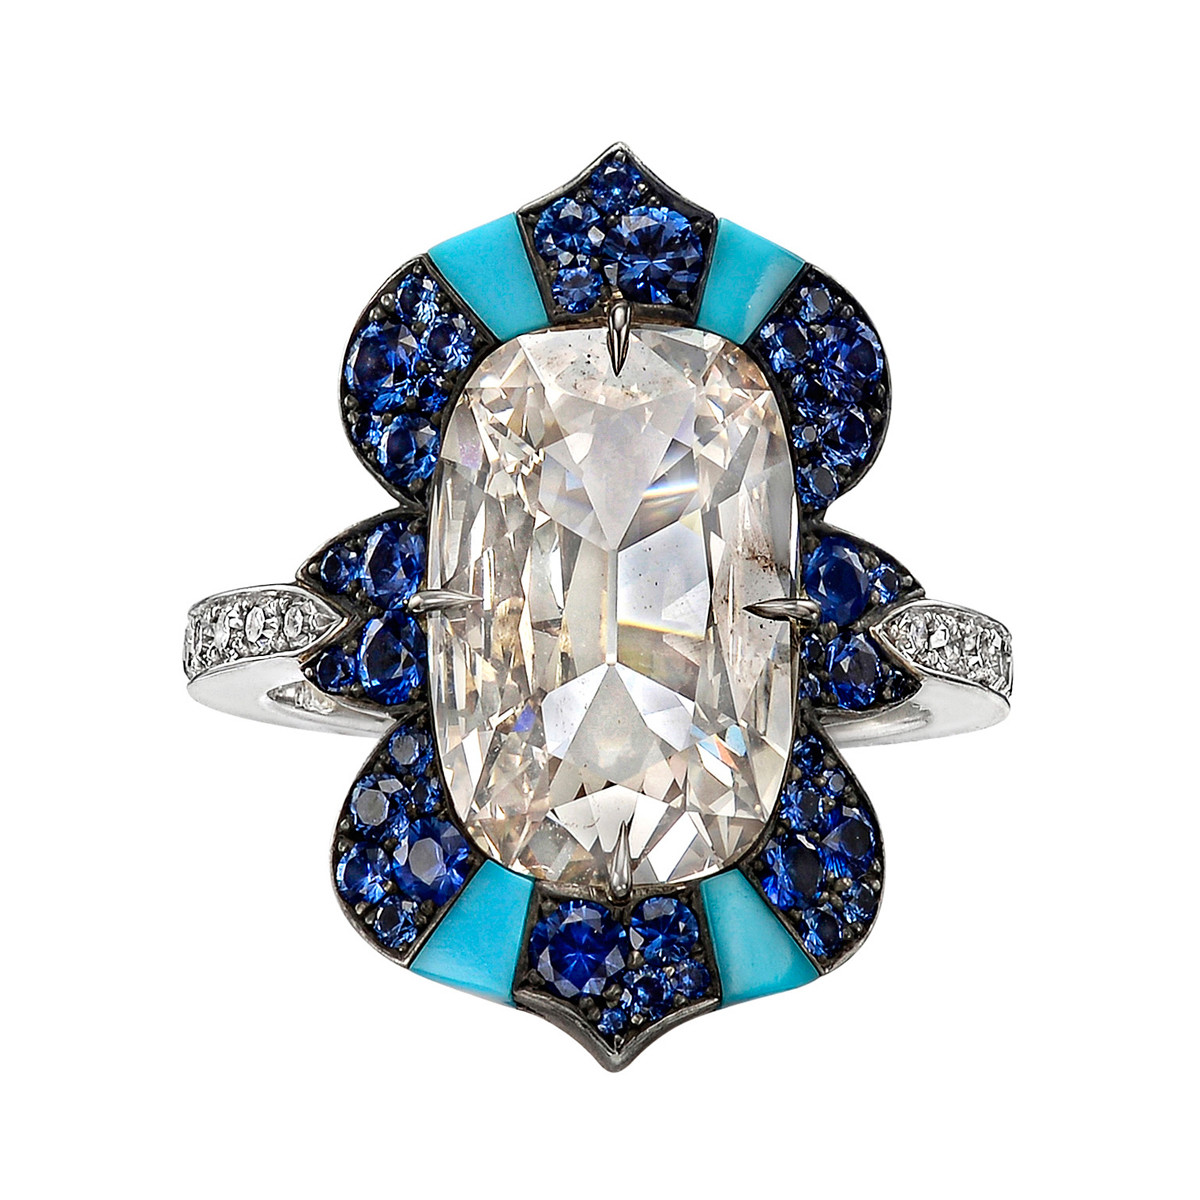 Elongated Cushion Diamond, Sapphire & Turquoise Ring